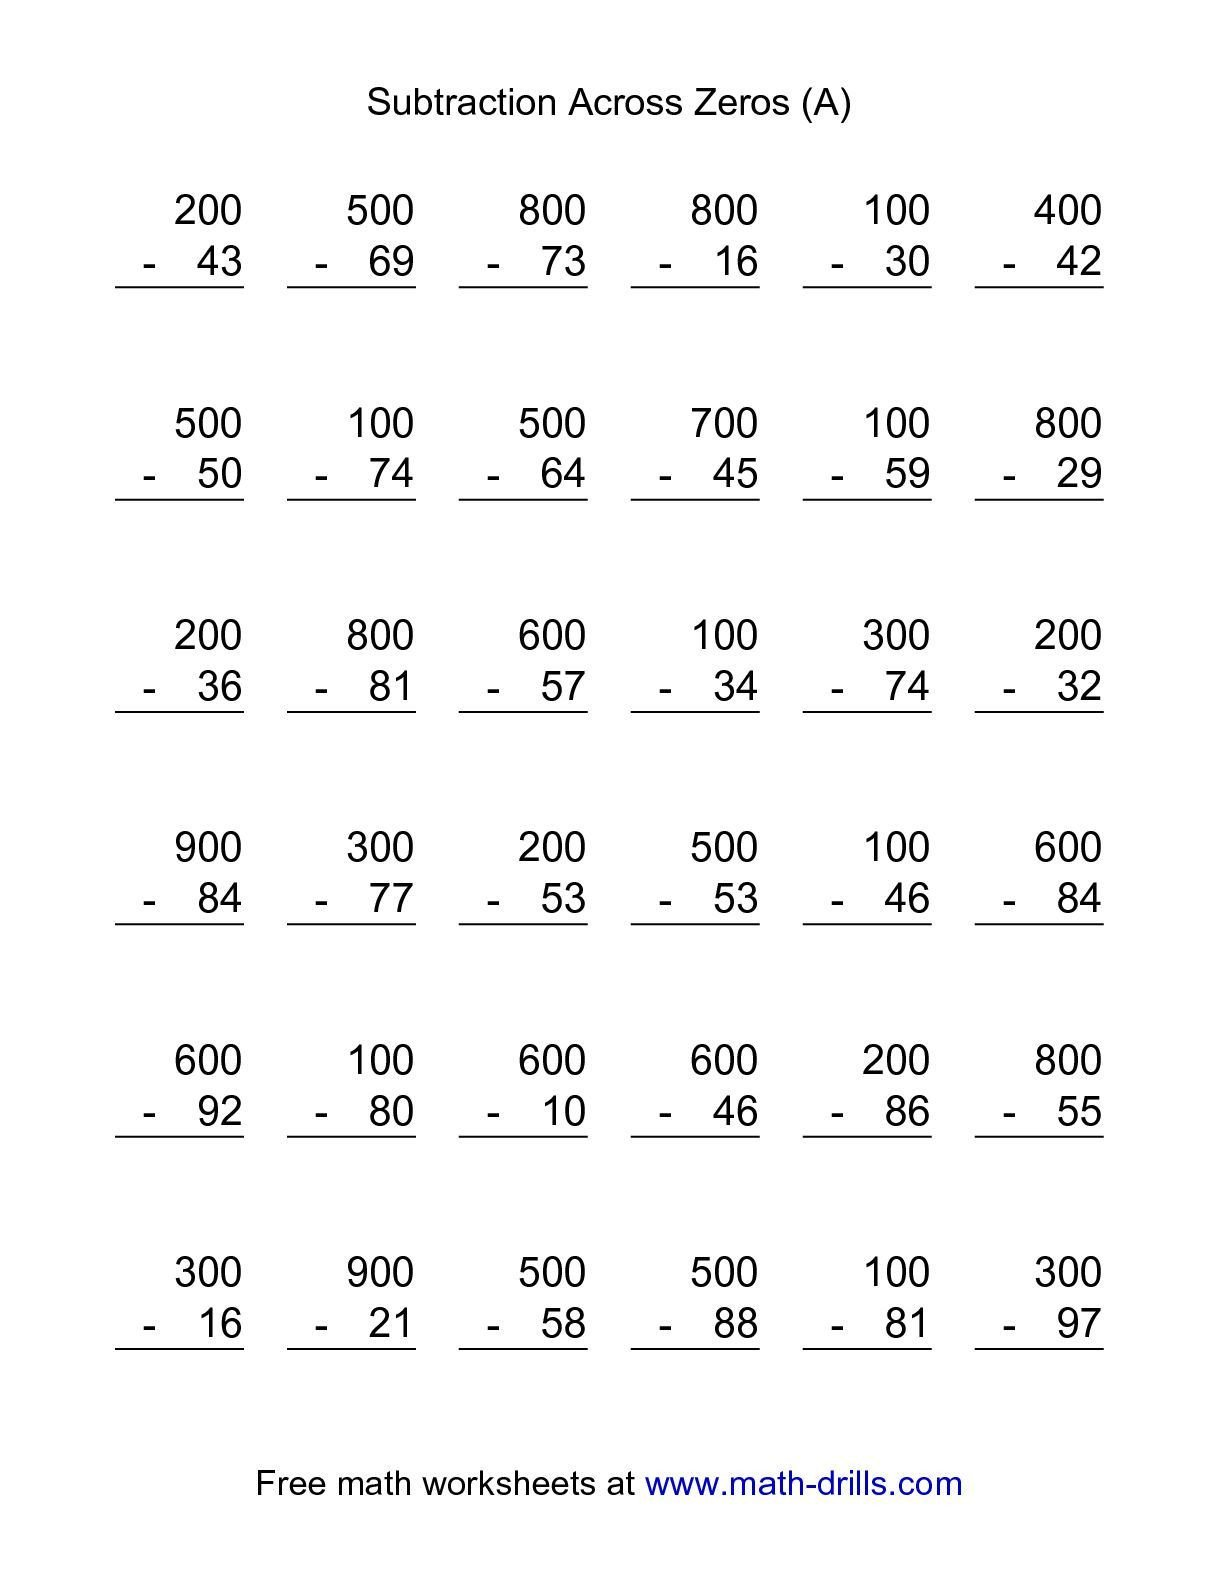 Subtracting Across Zeros Worksheet Pdf the Subtraction Across Zeros 36 Questions A Math